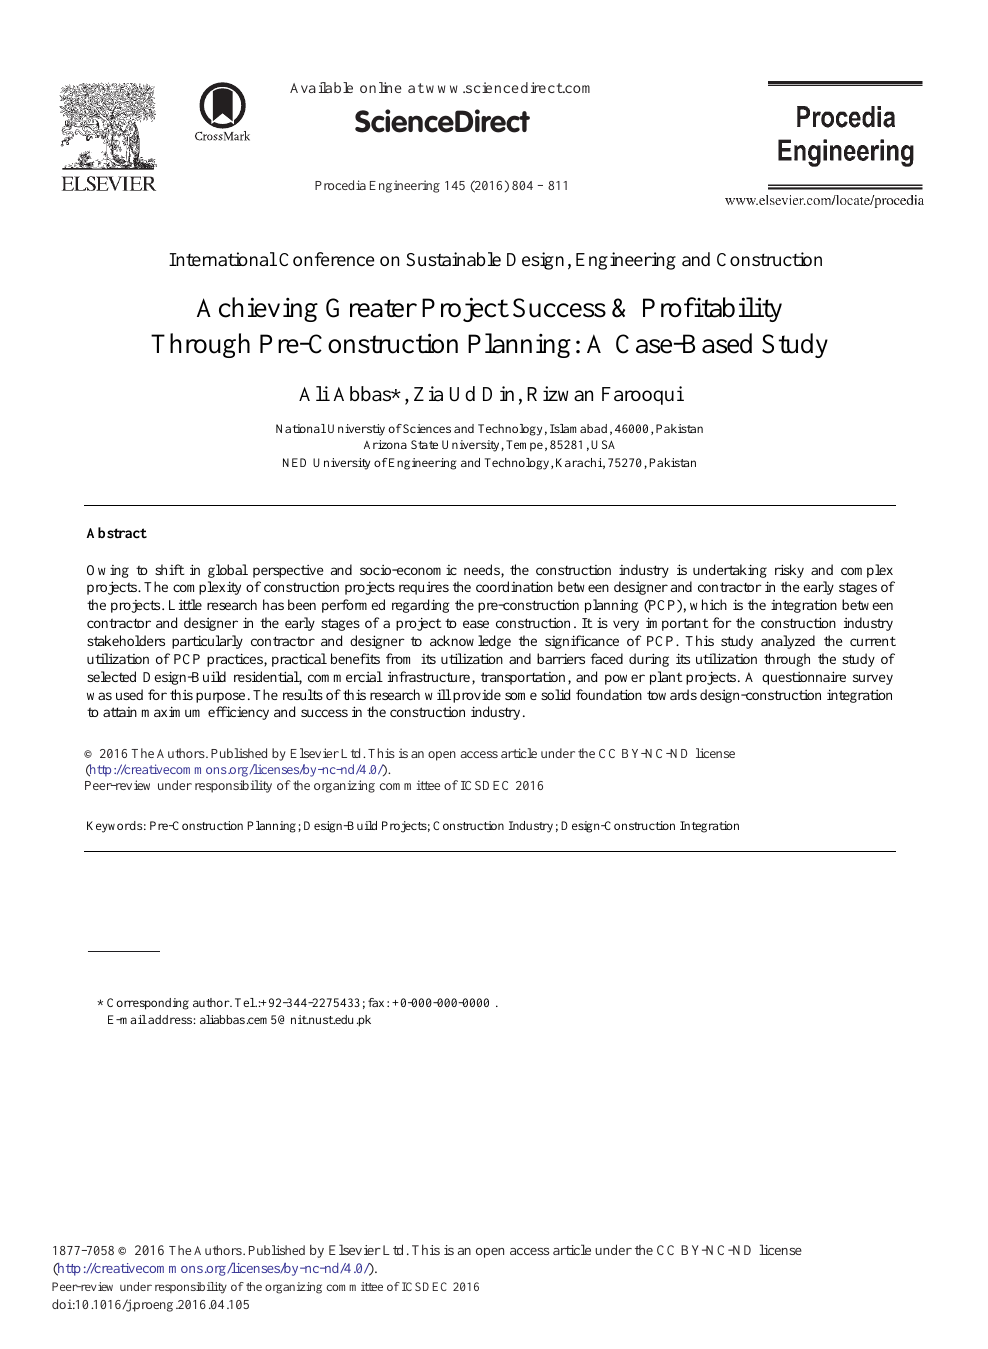 Achieving Greater Project Success Profitability Through Pre Construction Planning A Case Based Study Topic Of Research Paper In Civil Engineering Download Scholarly Article Pdf And Read For Free On Cyberleninka Open Science